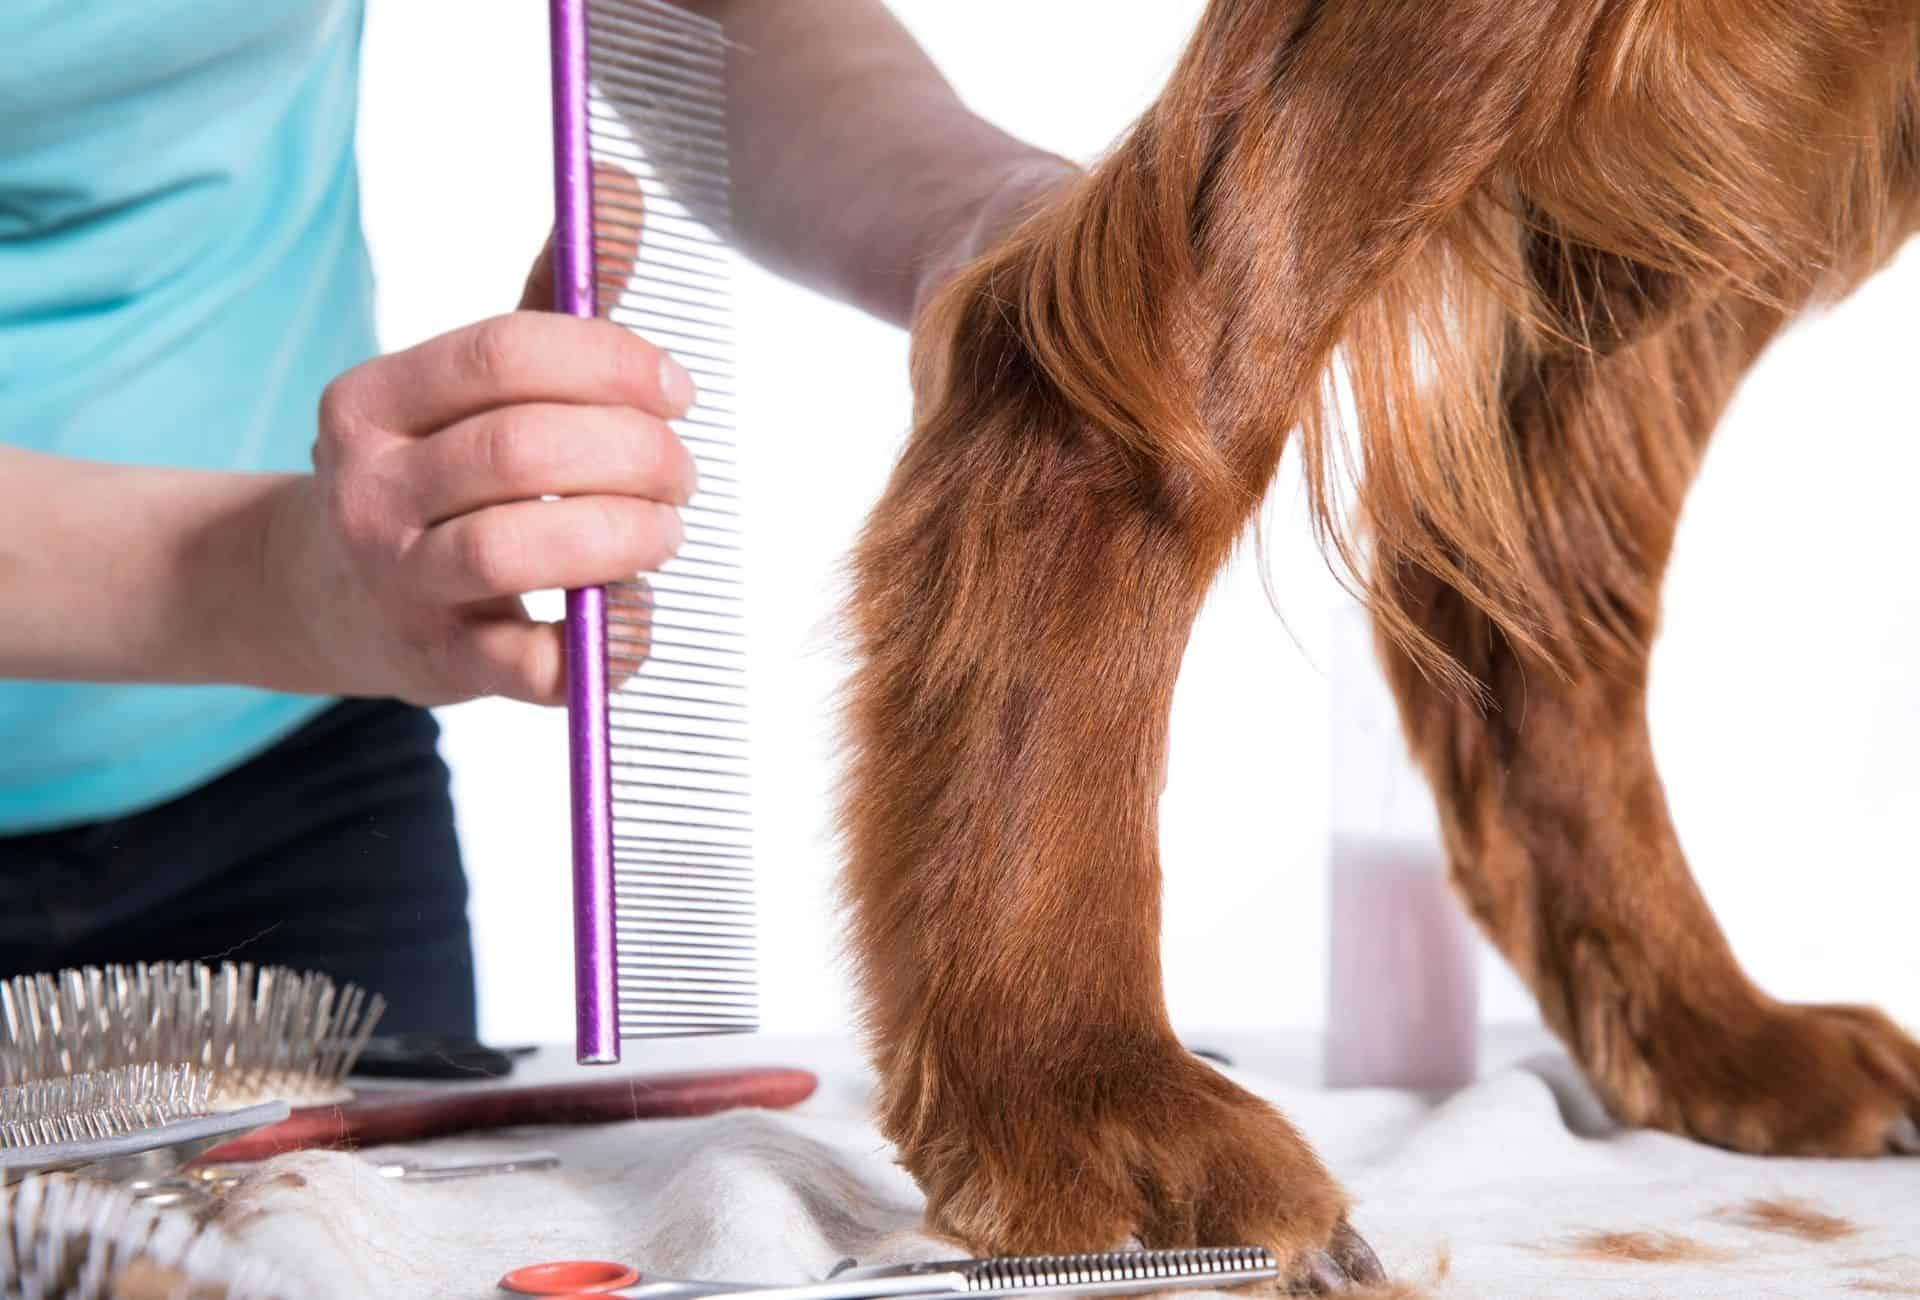 Dog is groomed and cutting or improperly grooming the hair around the anal region can cause a swollen rear end.